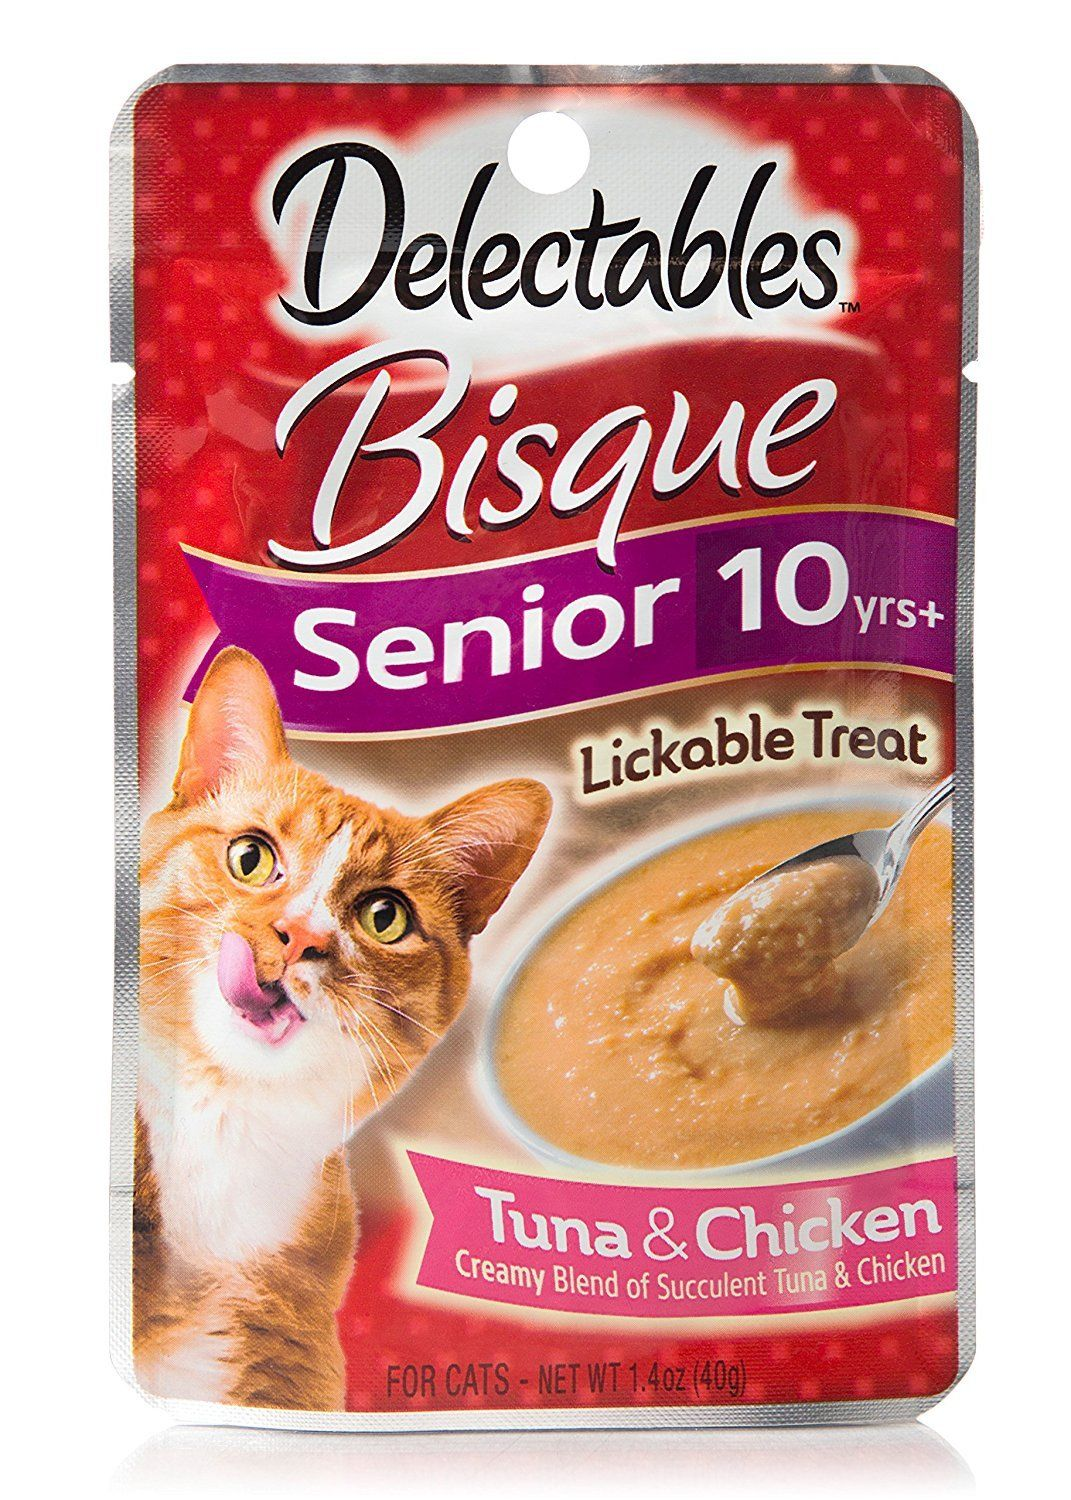 Delectables bisque senior 10 yrs with vitamins e and b